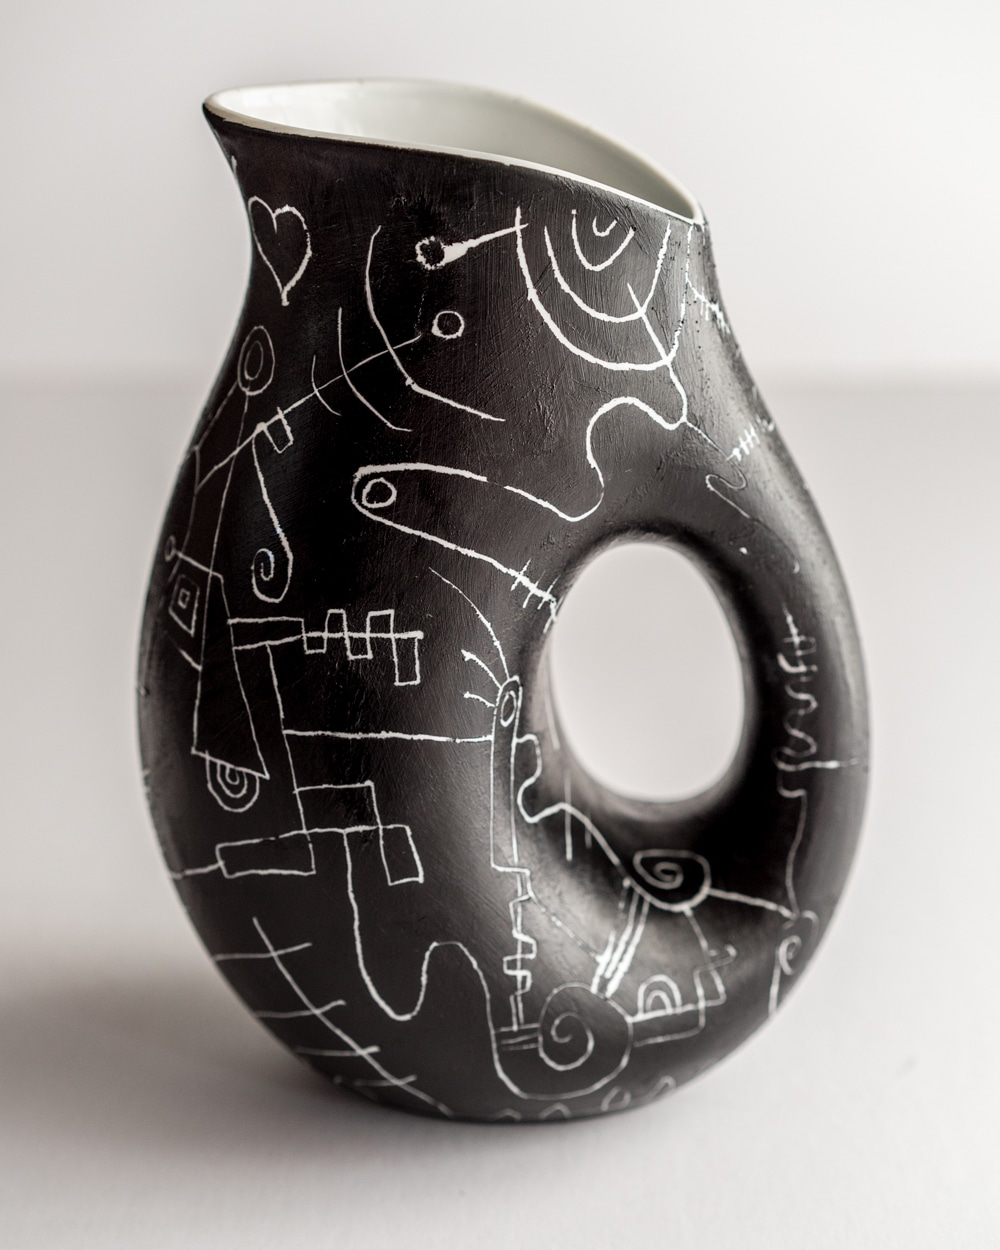 painted_carafe_noire_love_2